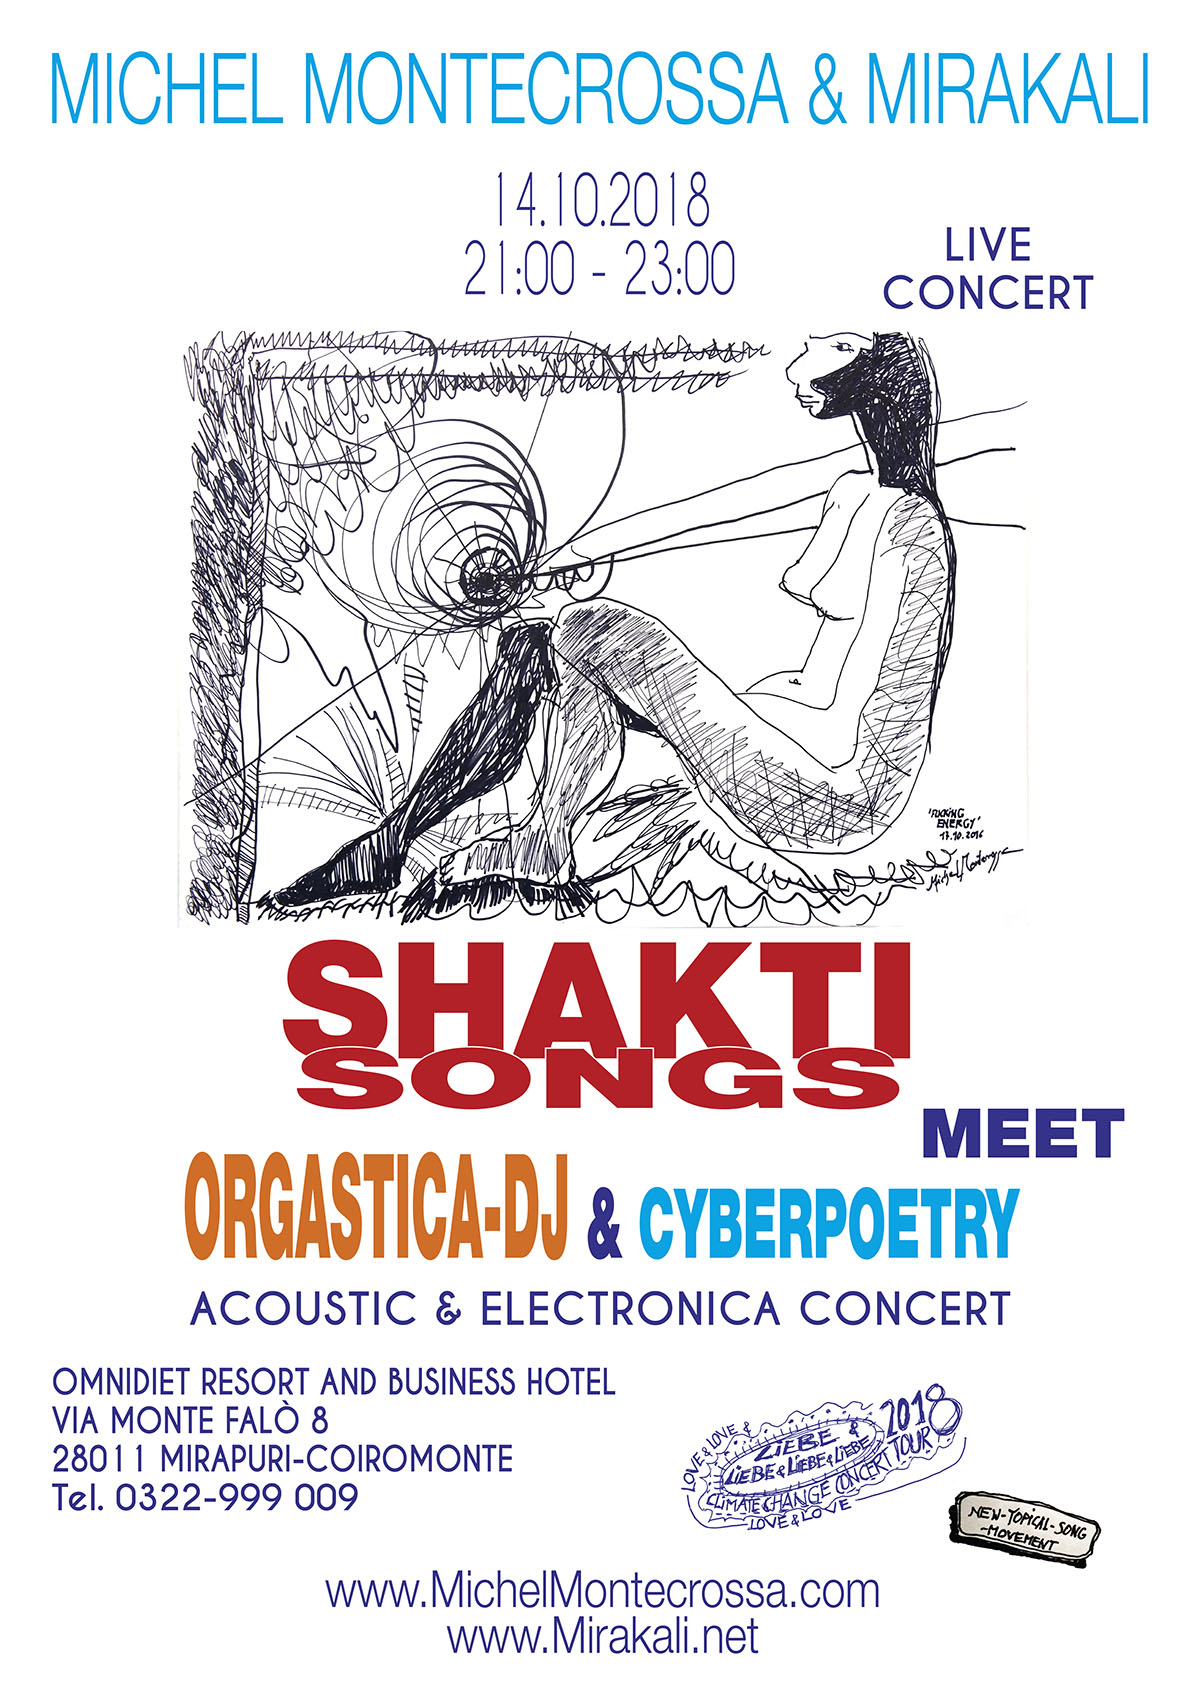 Concert Poster: 'Shakti Songs meet Orgastica-DJ & Cyberpoetry' Acoustic & Electronica Concert on 14th October 2018 in the Omnidiet Music-Hall (Mirapuri, Italy).